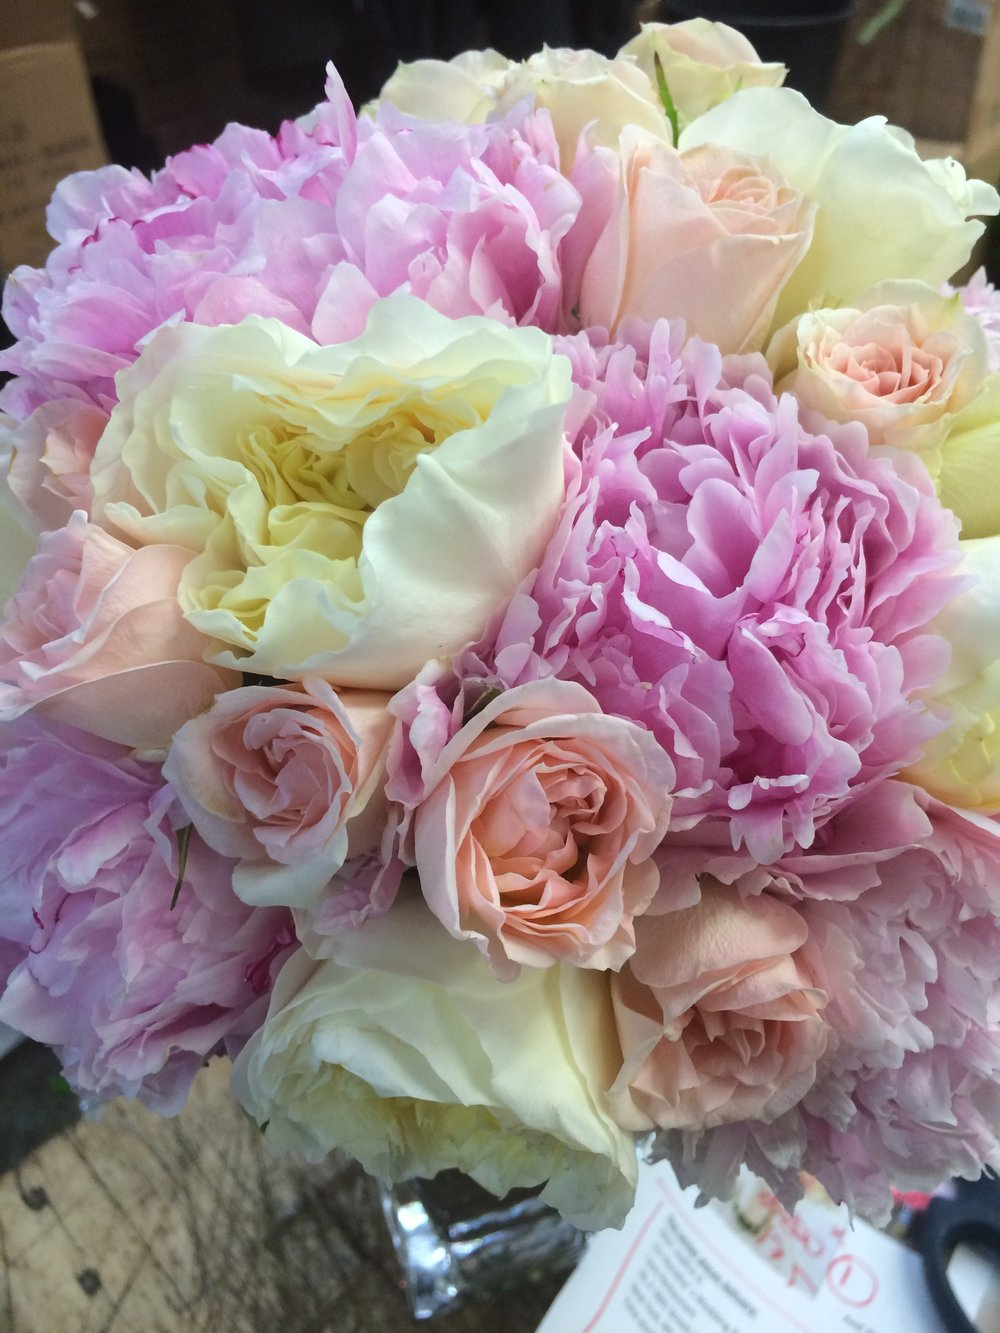 Fragrant, Frilly & Feminine!